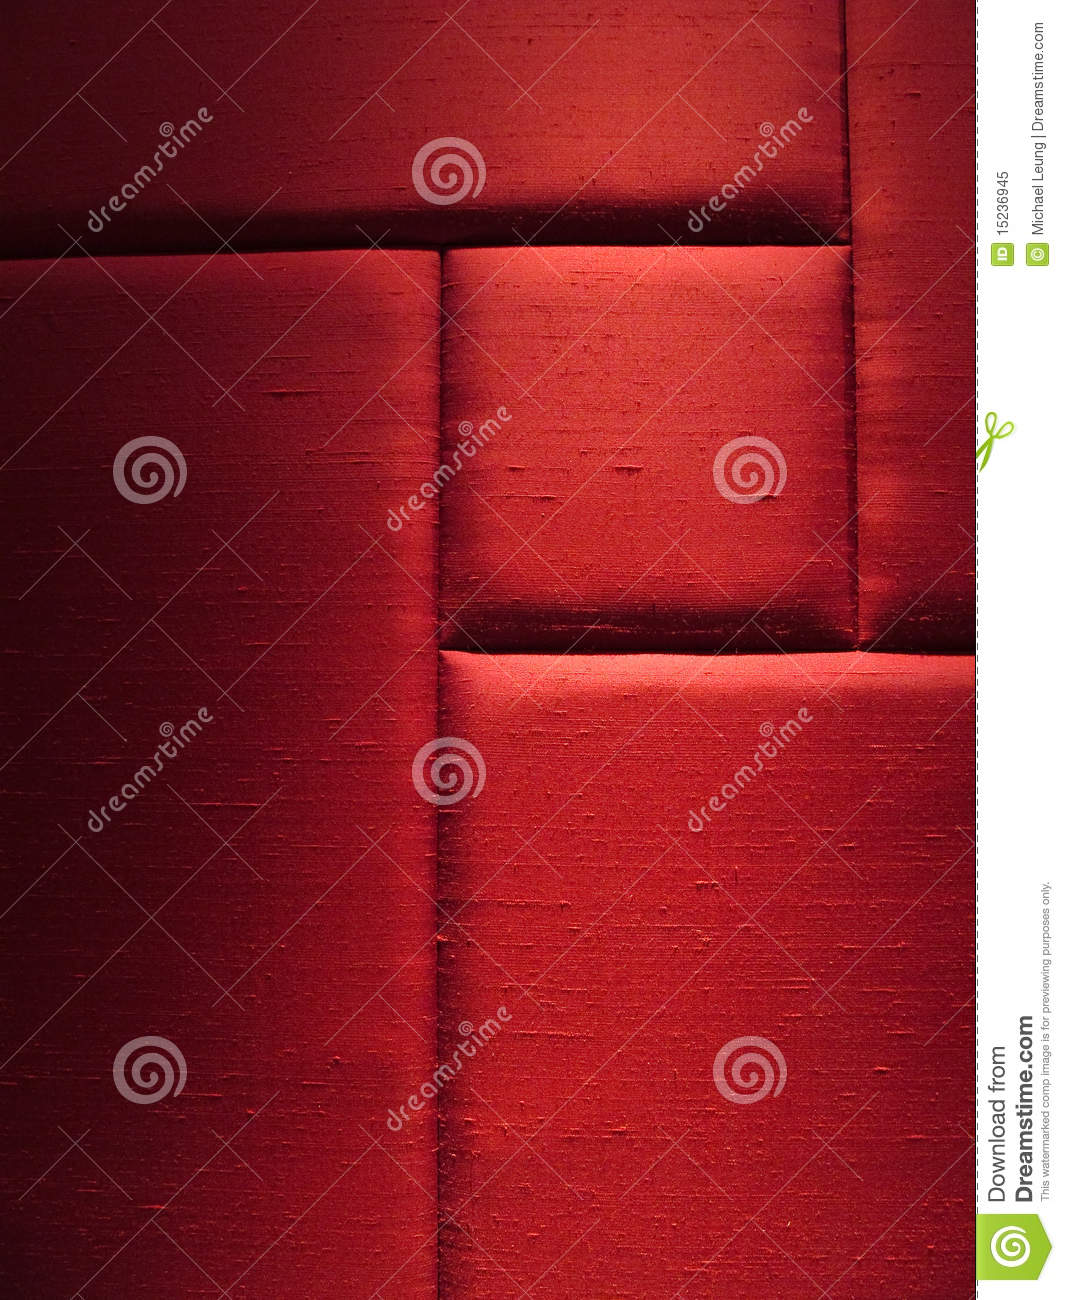 Red Fabric Wall Panel Royalty Free Stock Photo  Image